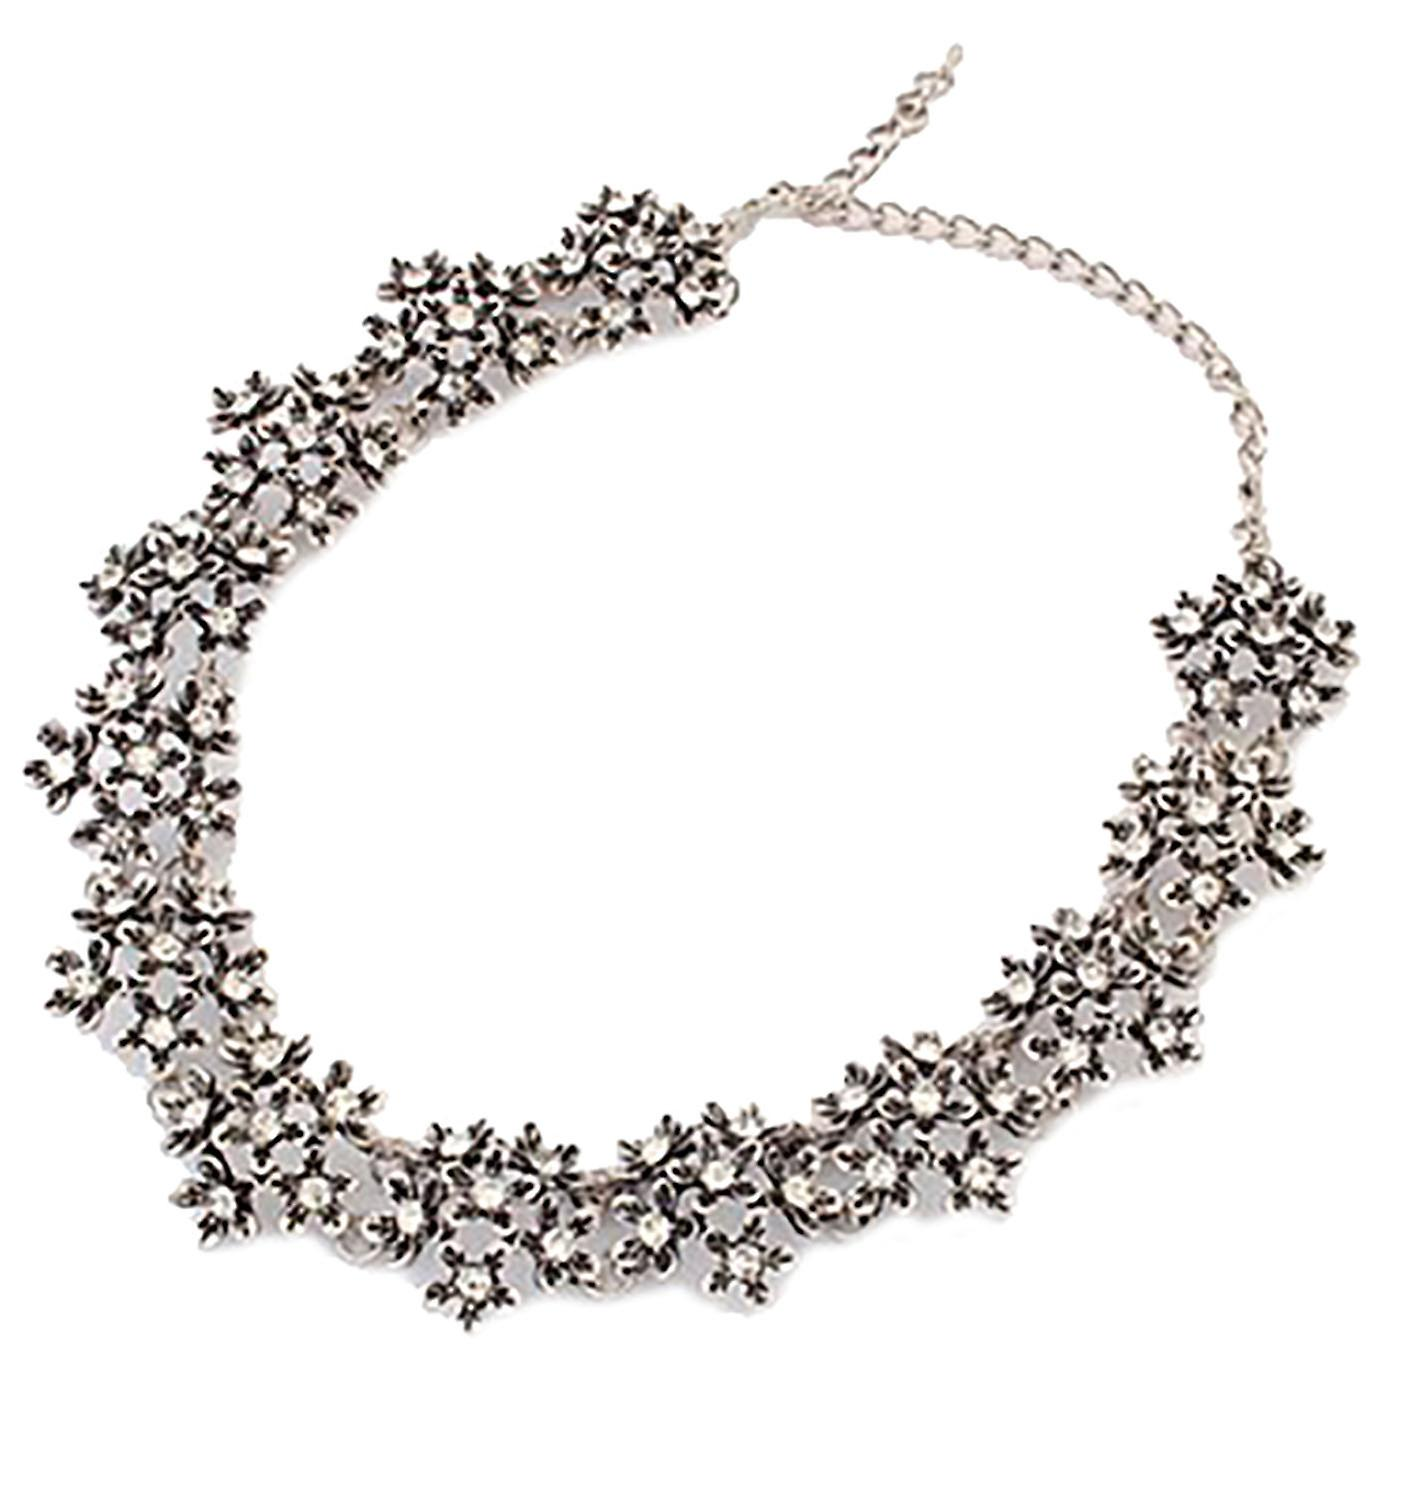 Waooh - necklace in the shape of small flowers with Rhinestone